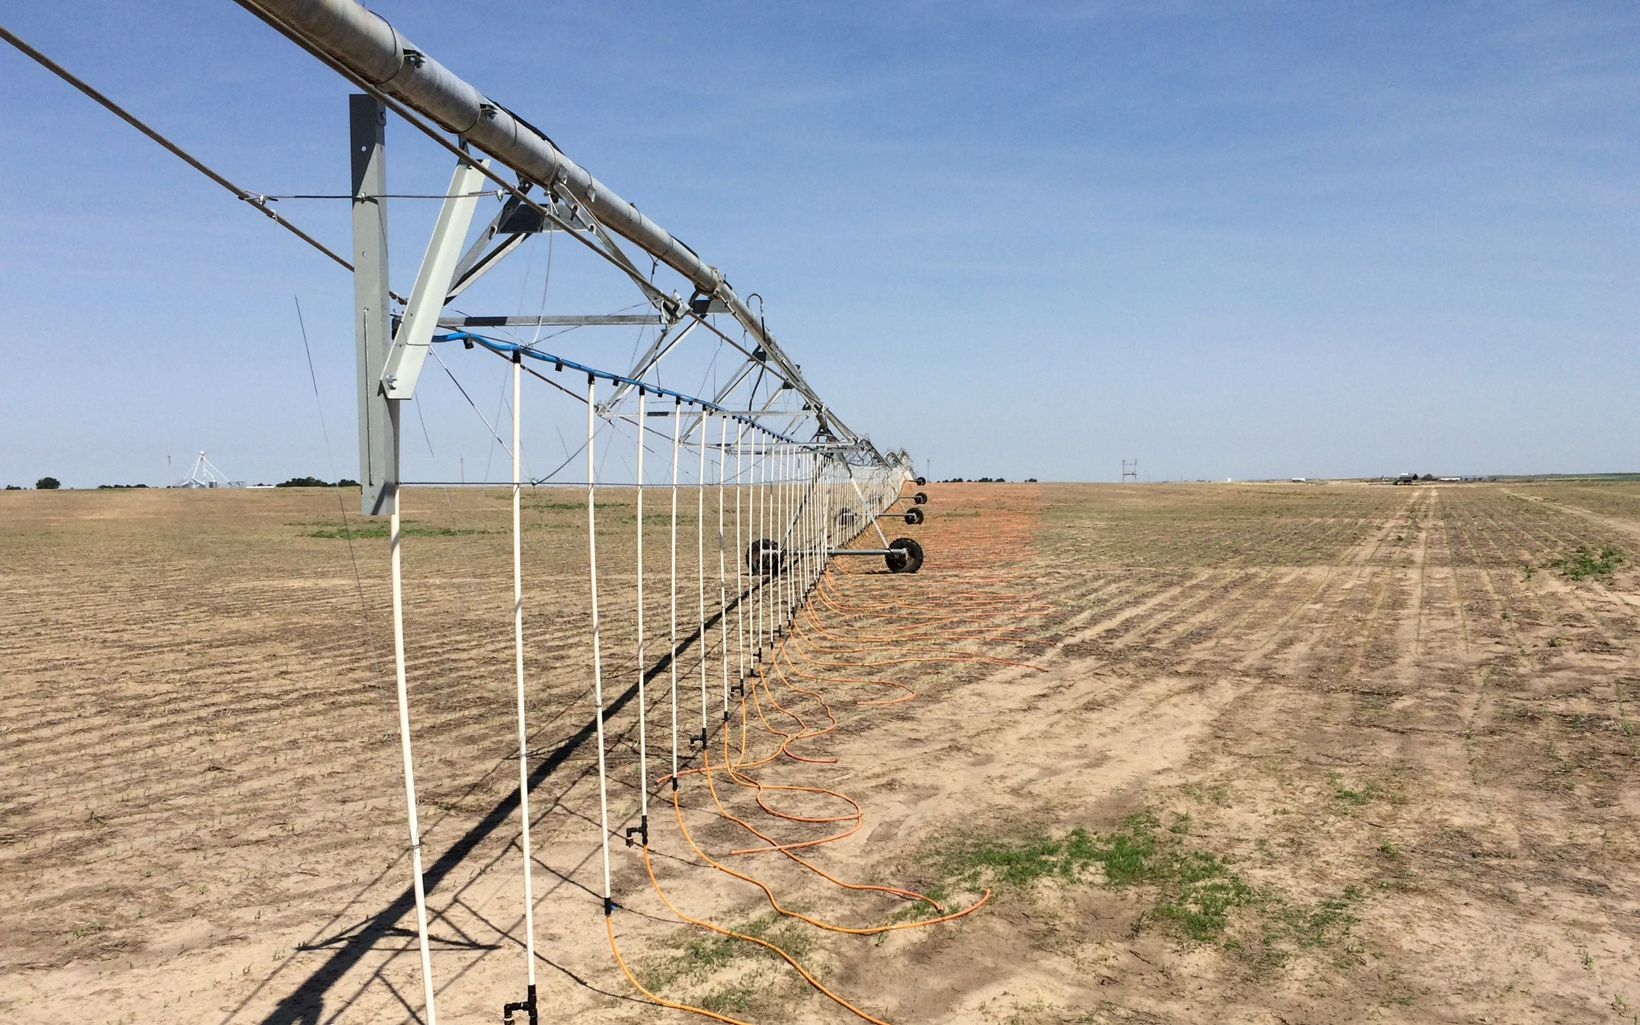 An irrigation arm on wheels extends away from the camera with small pipes and hoses running down to the ground at regular intervals to water a field.